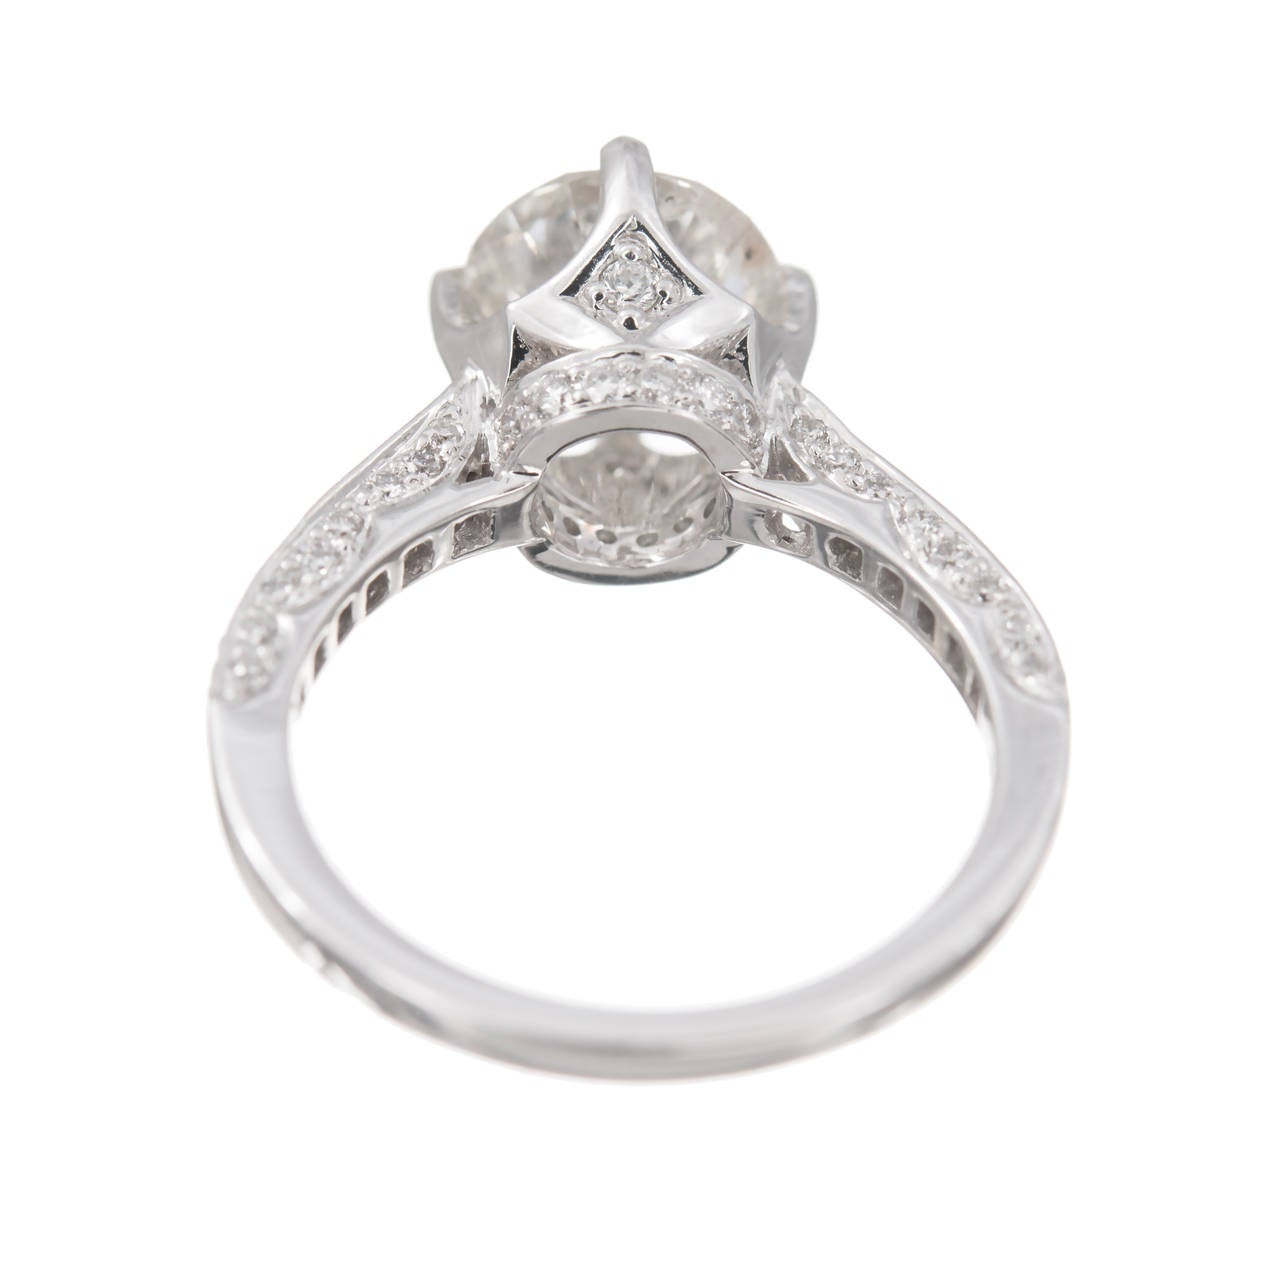 Round diamond solitaire engagement ring. Sparkly transitional Ideal cut center diamond faces up white and sparkly. 18k white gold setting with accent diamonds.Circa 1960.  1 round brilliant transitional  cut diamond, approx. total weight 2.51cts,